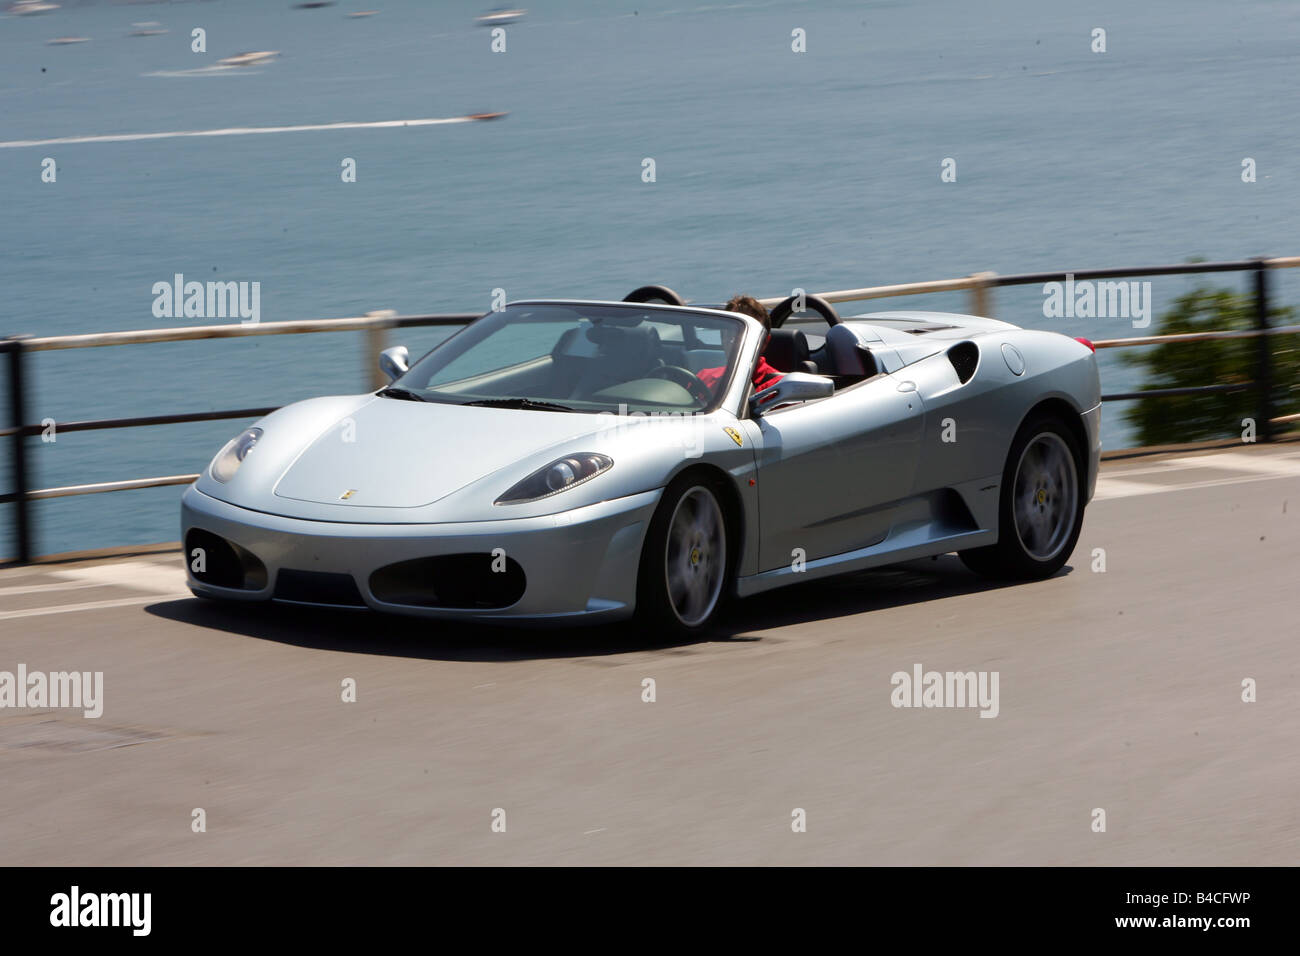 Car ferrari f430 spider f1 model year 2005 silver convertible car ferrari f430 spider f1 model year 2005 silver convertible driving diagonal from the front frontal view country road vanachro Choice Image